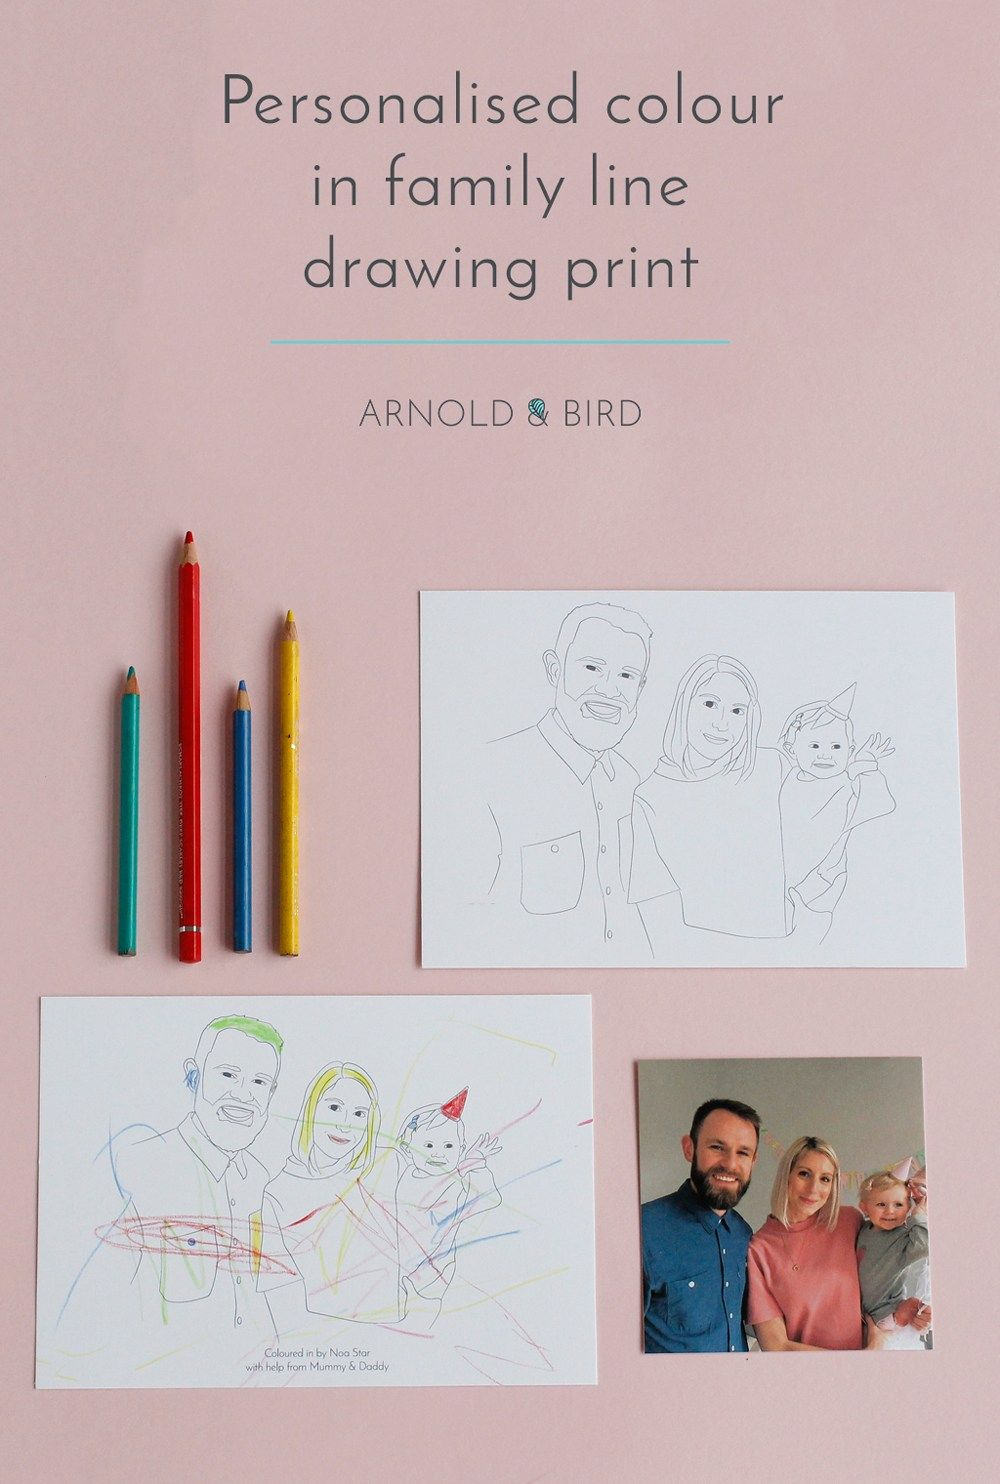 Colour in family portrait line illustration by Arnold & Bird